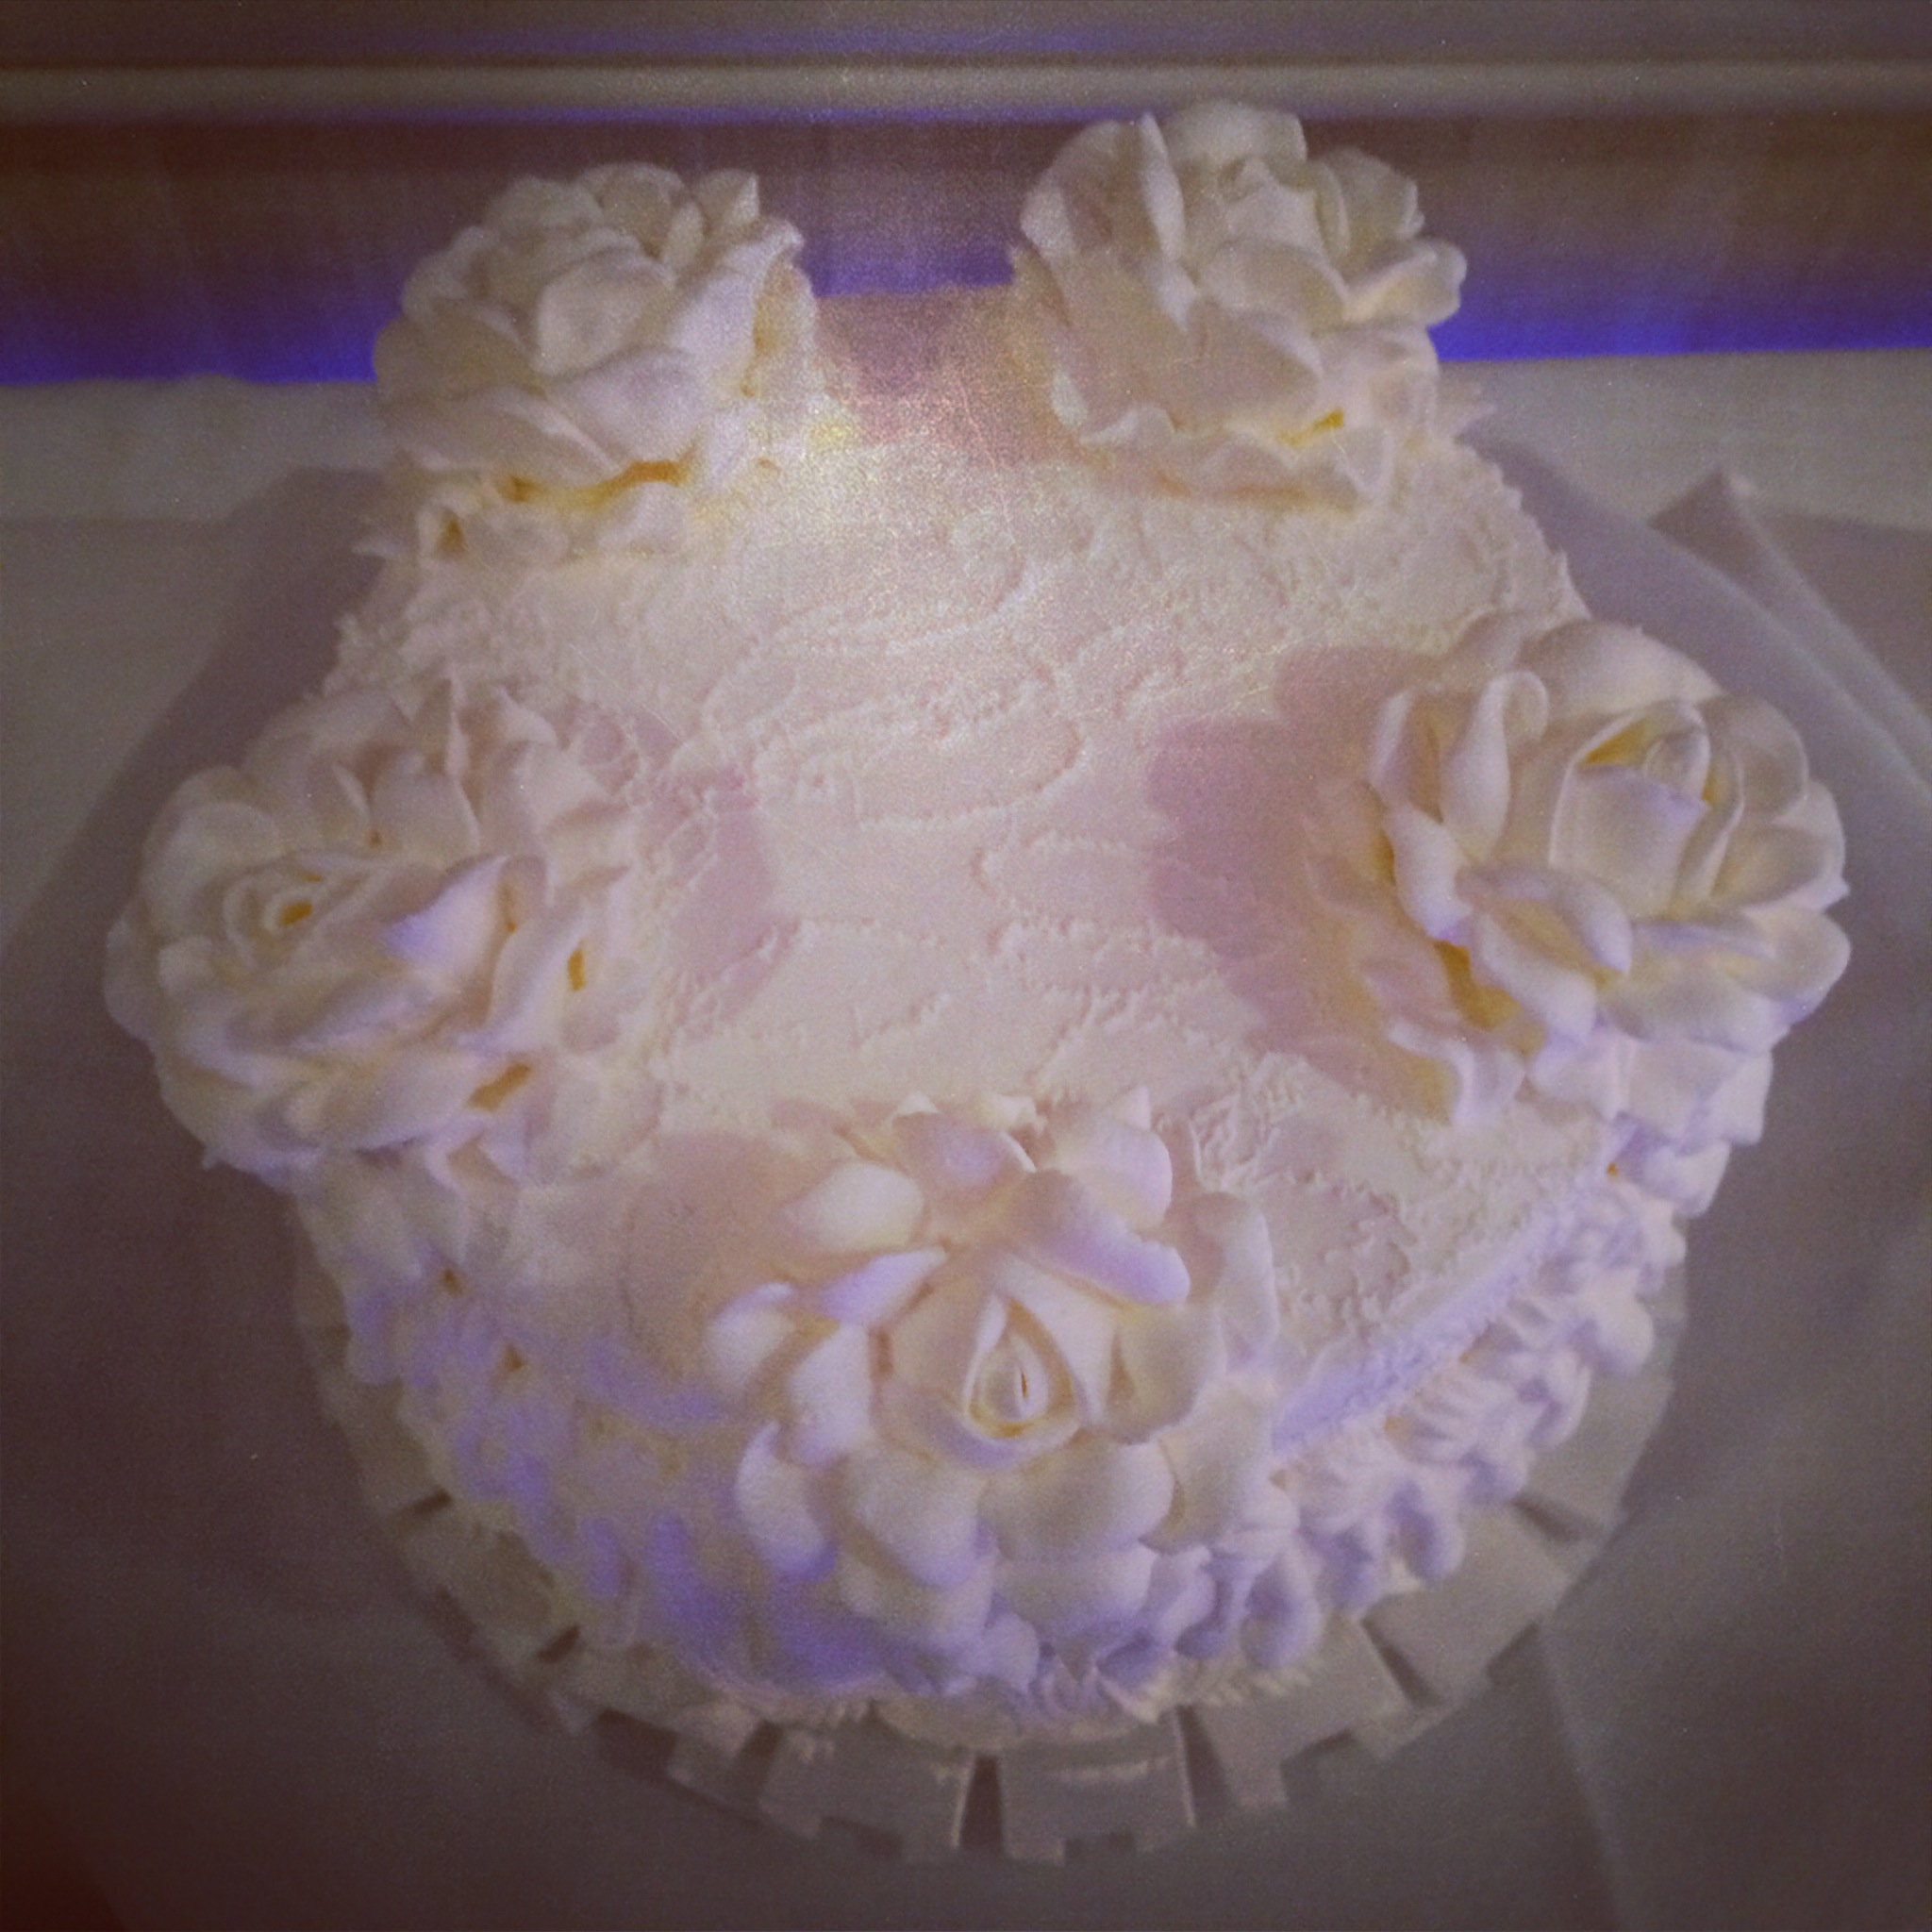 By far the most sugary-sweet cake I have ever tasted. Inspired by a grocery store near you!